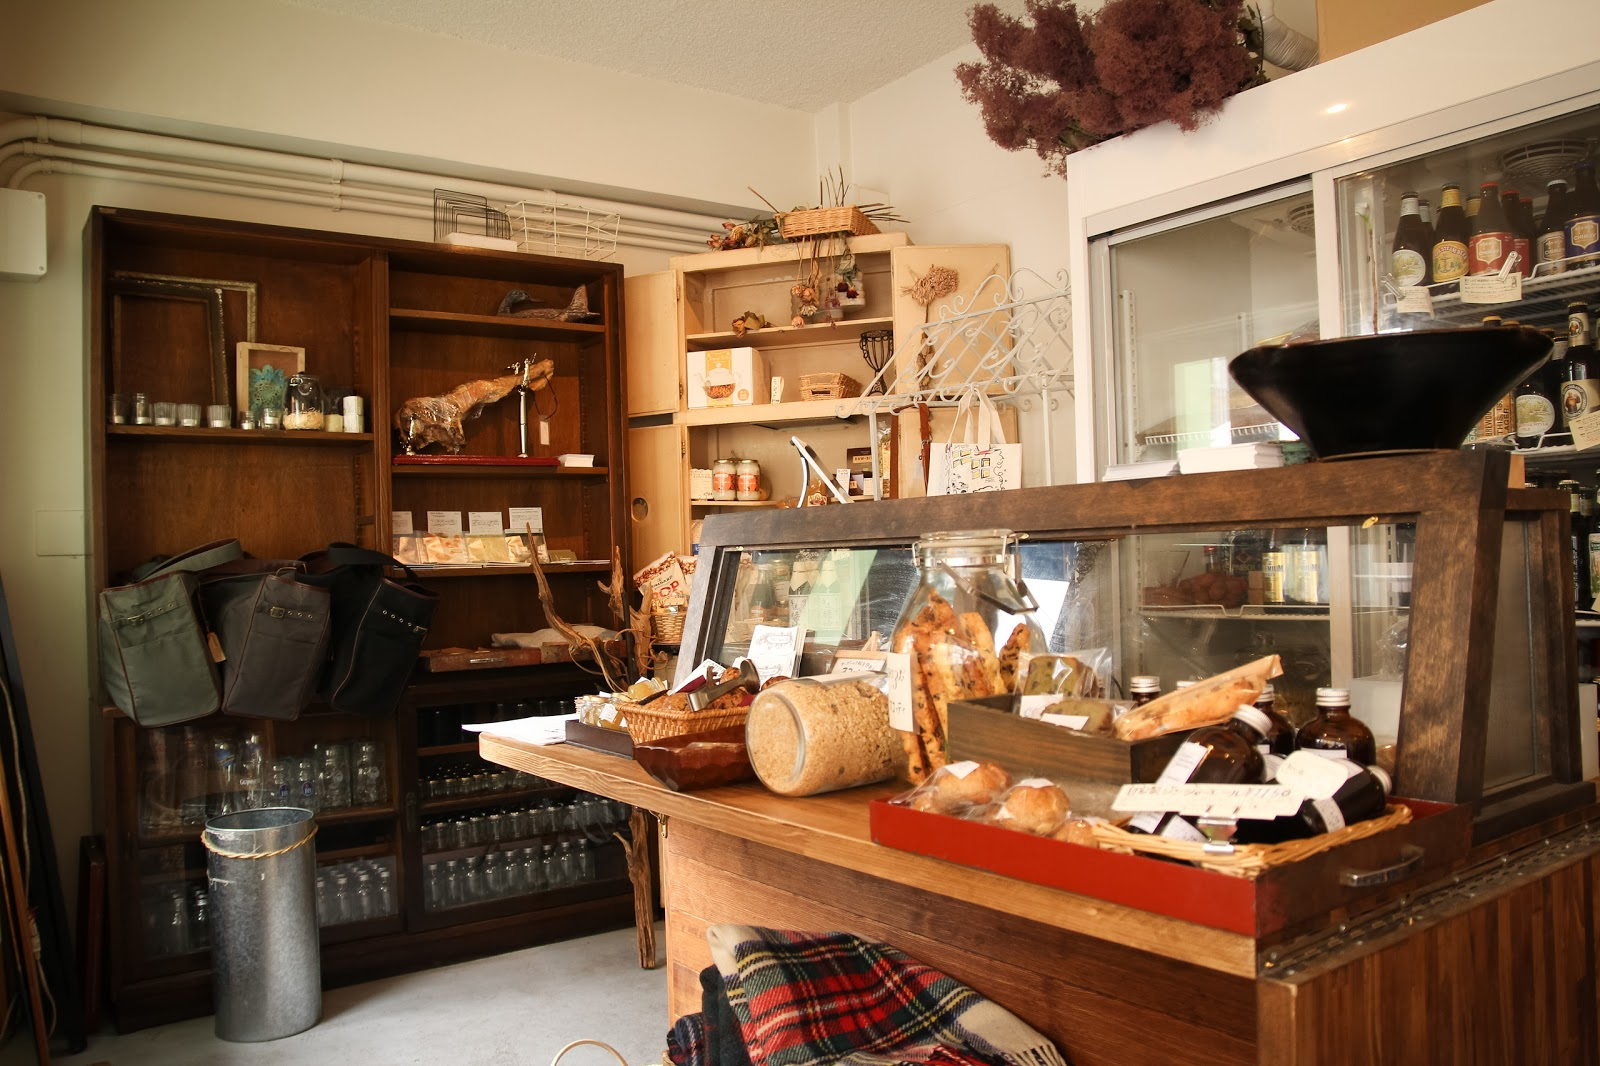 COUZT CAFE + SHOP(コーツトカフェ)にて